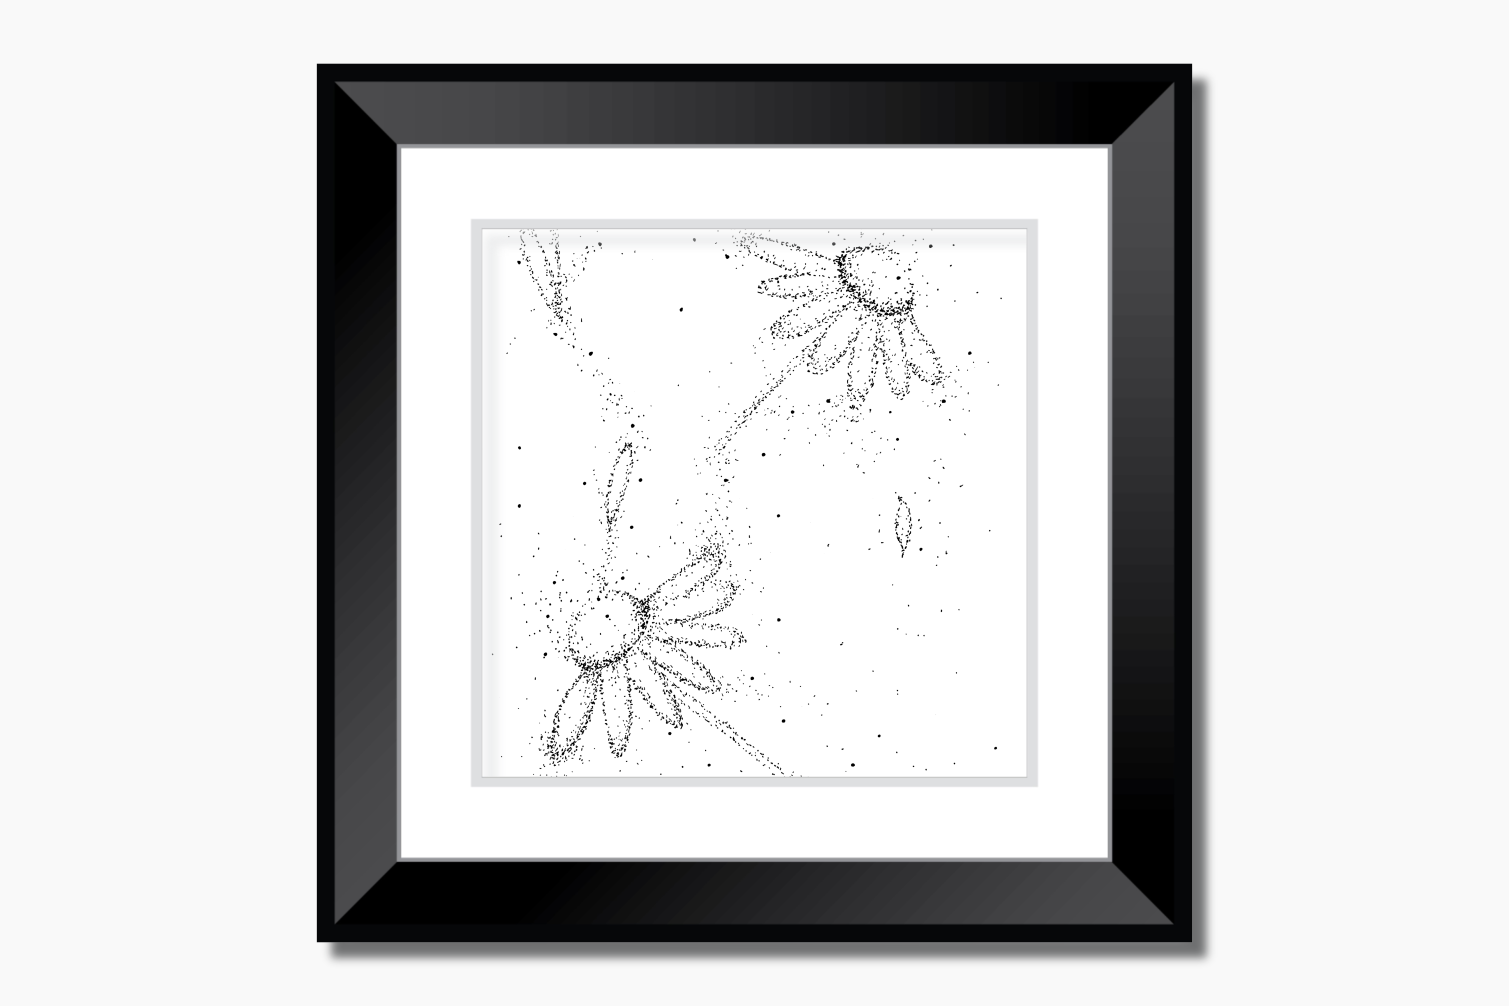 Doodle Flowers Art, A1, SVG example image 5